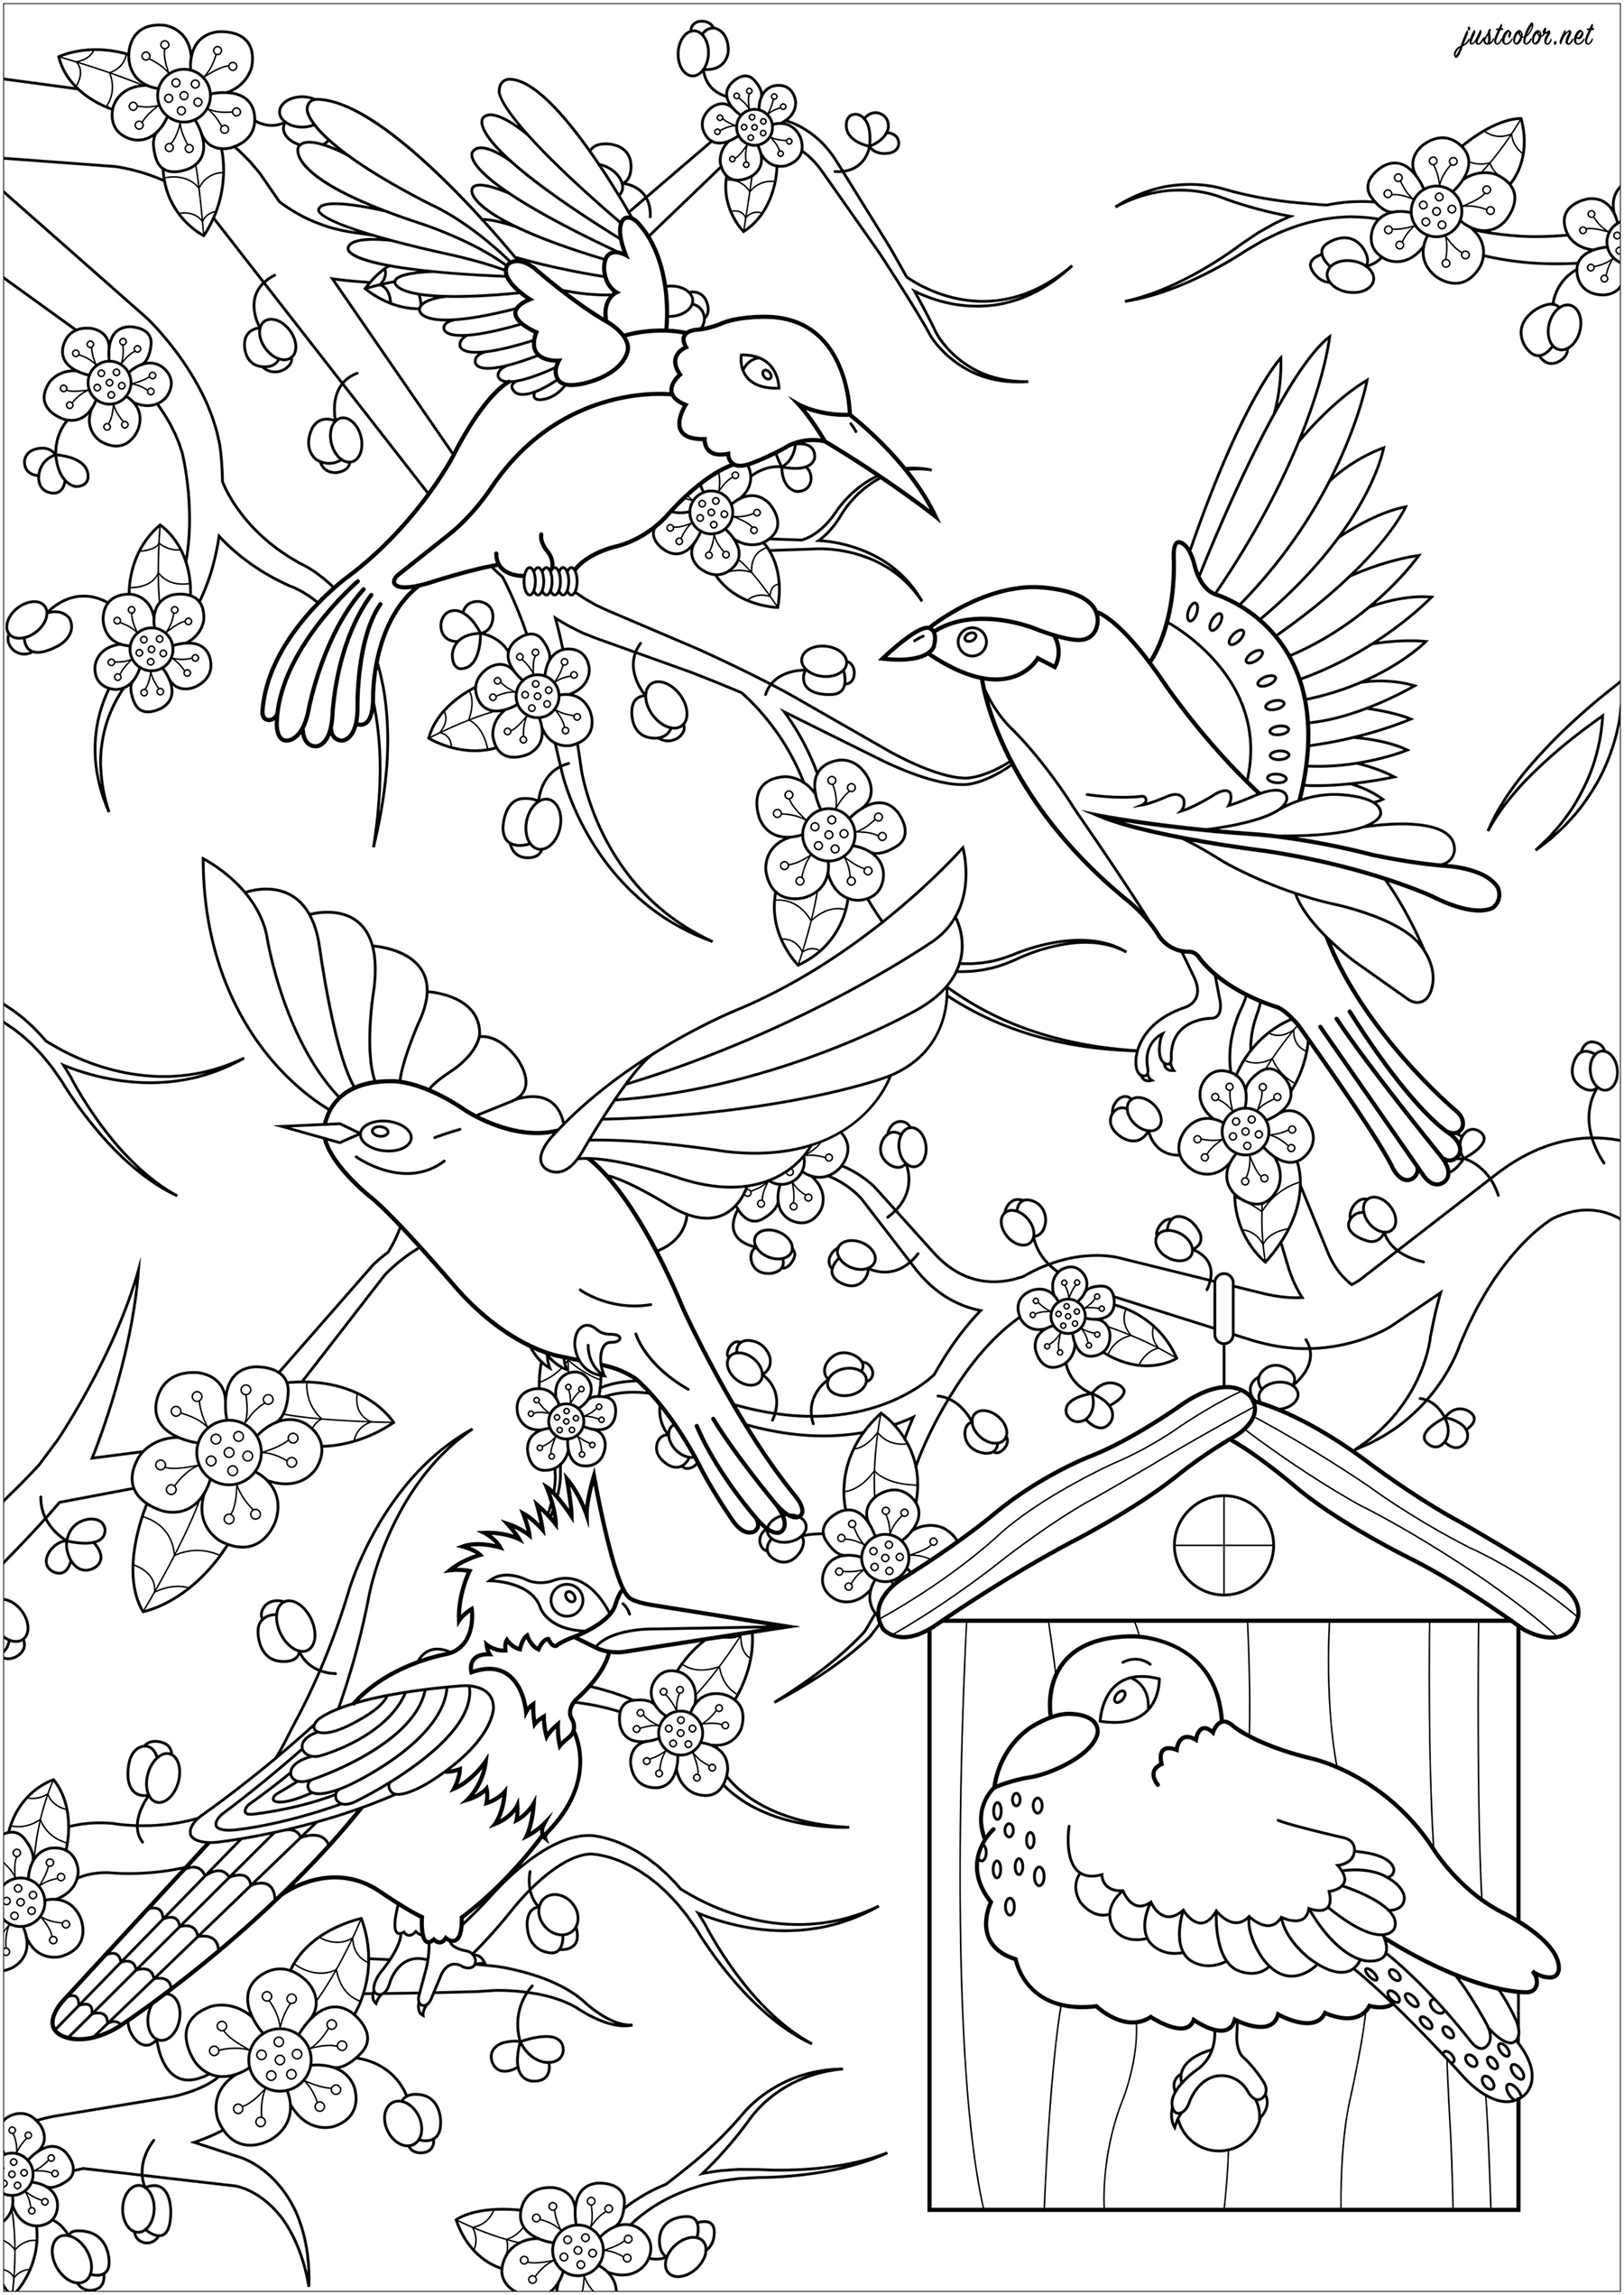 Color these five birds flying in front of a Japanese cherry tree